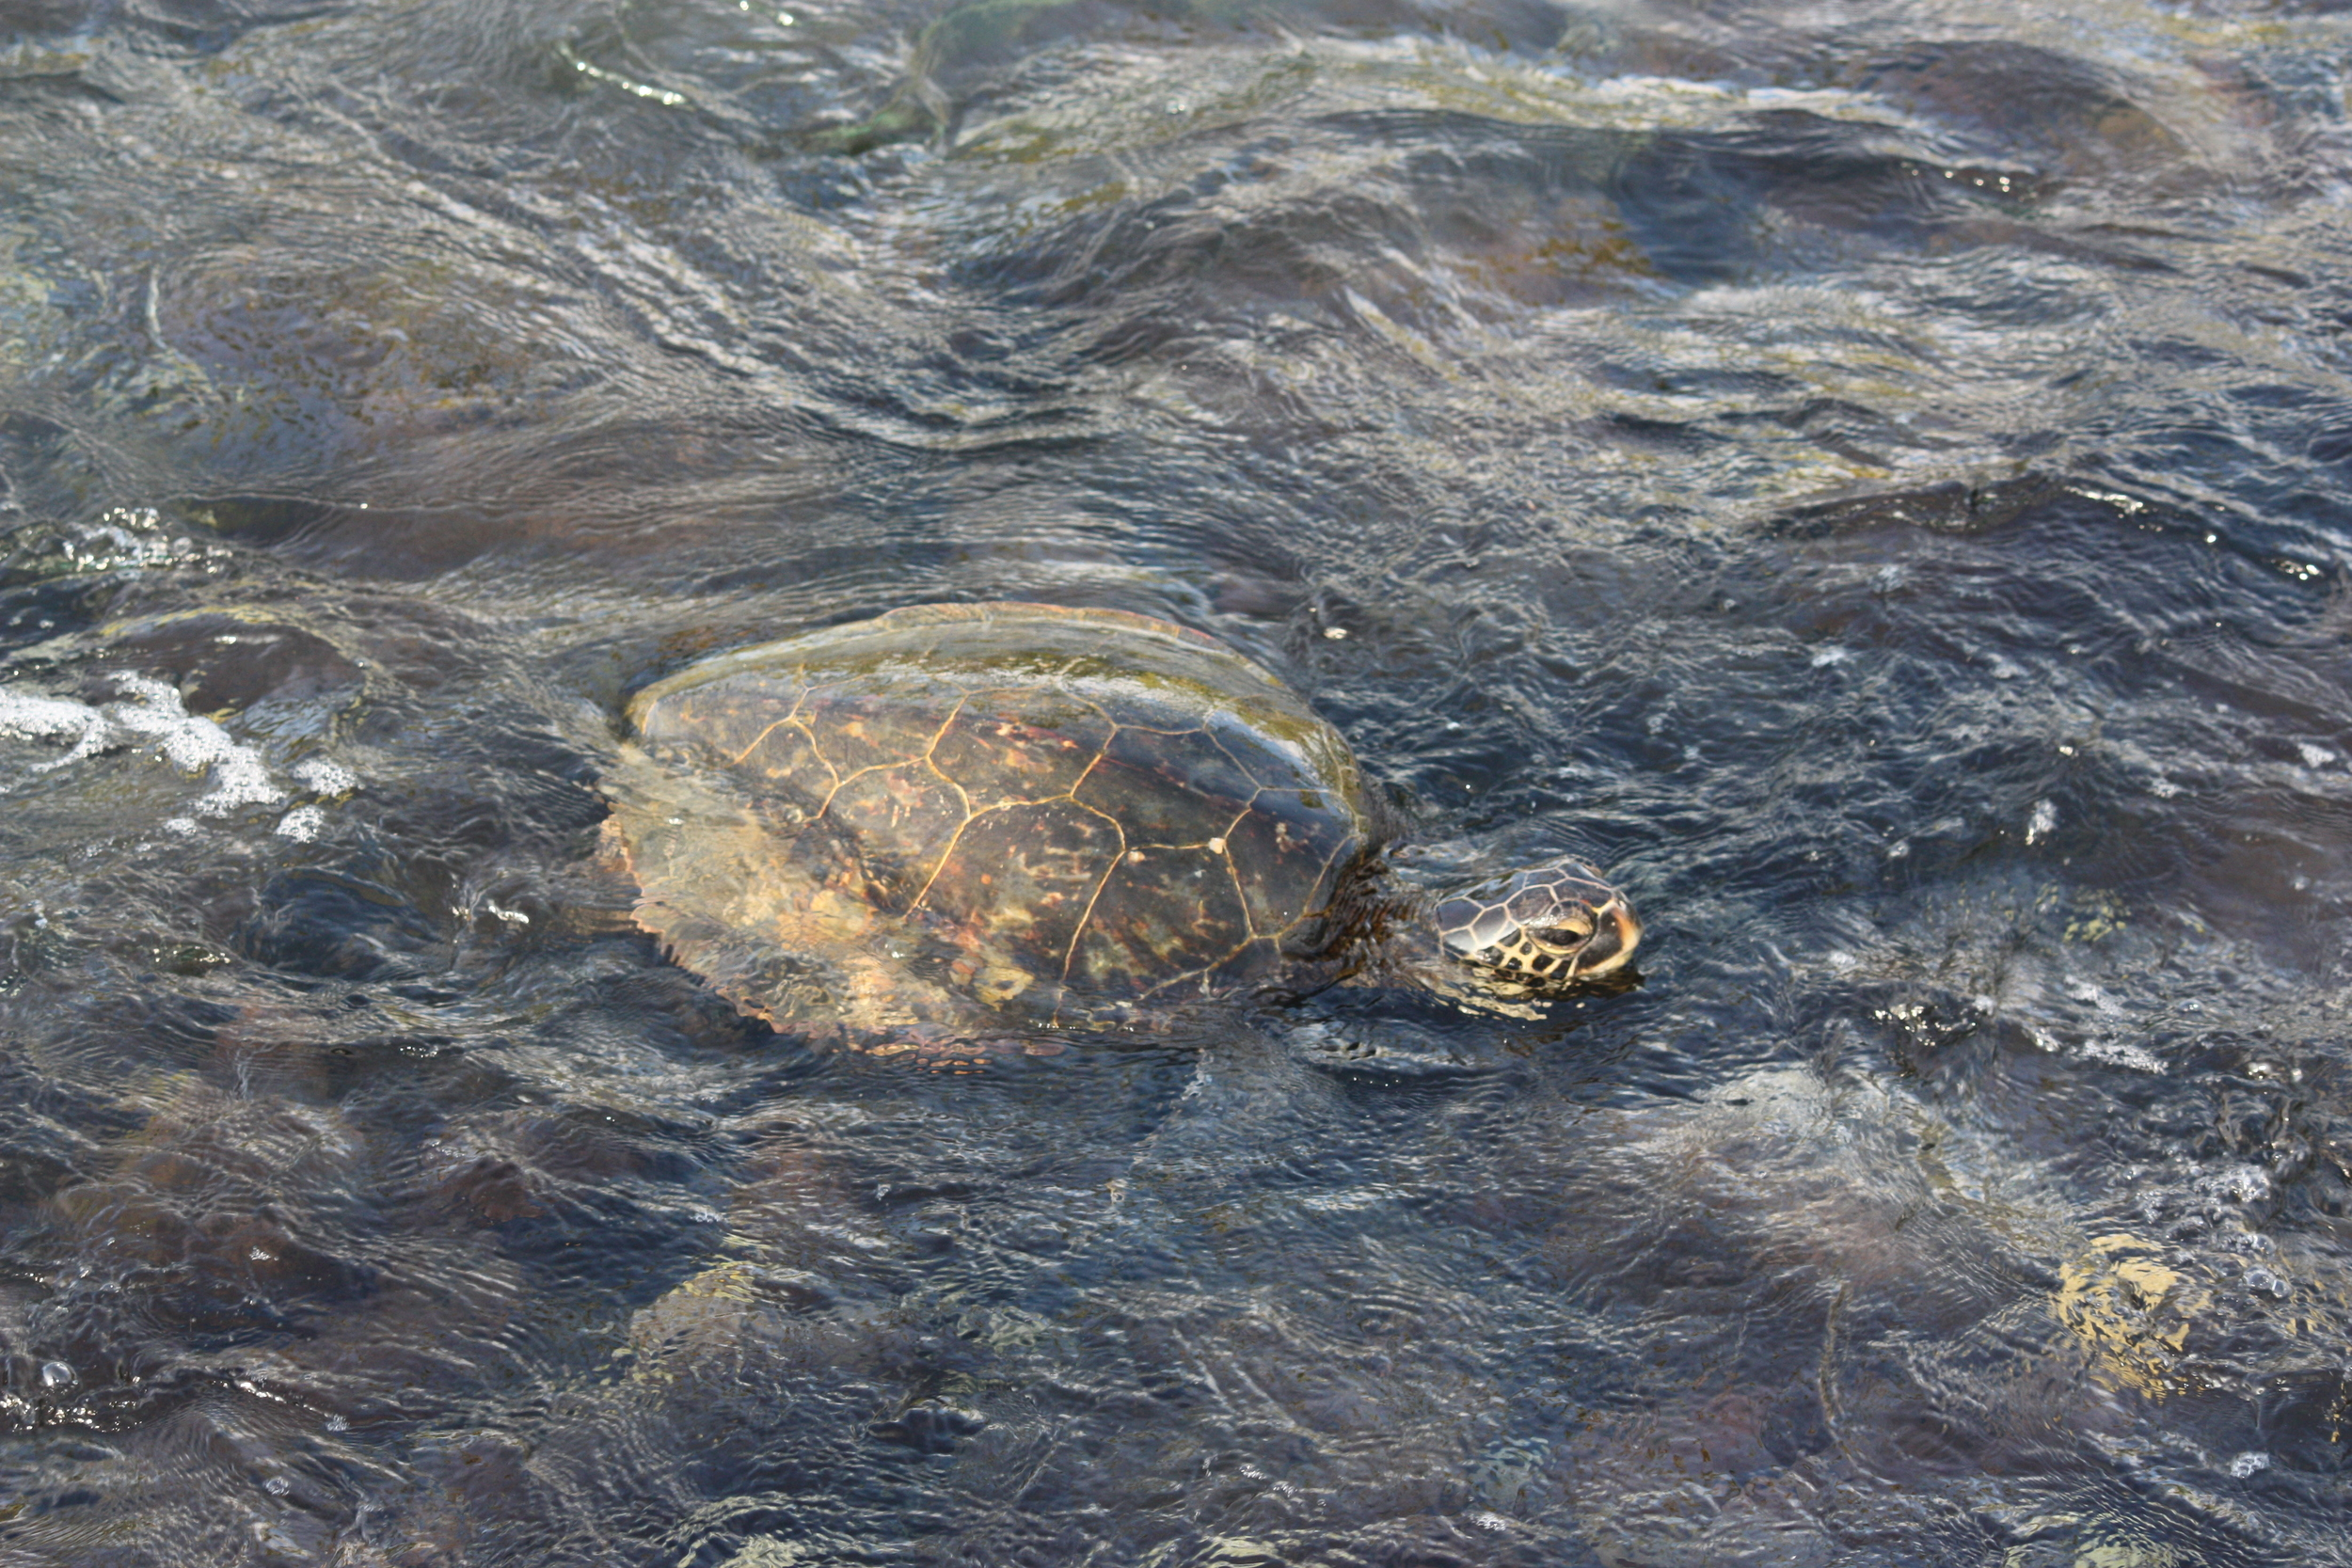 One of many friendly sea turtles we encountered.